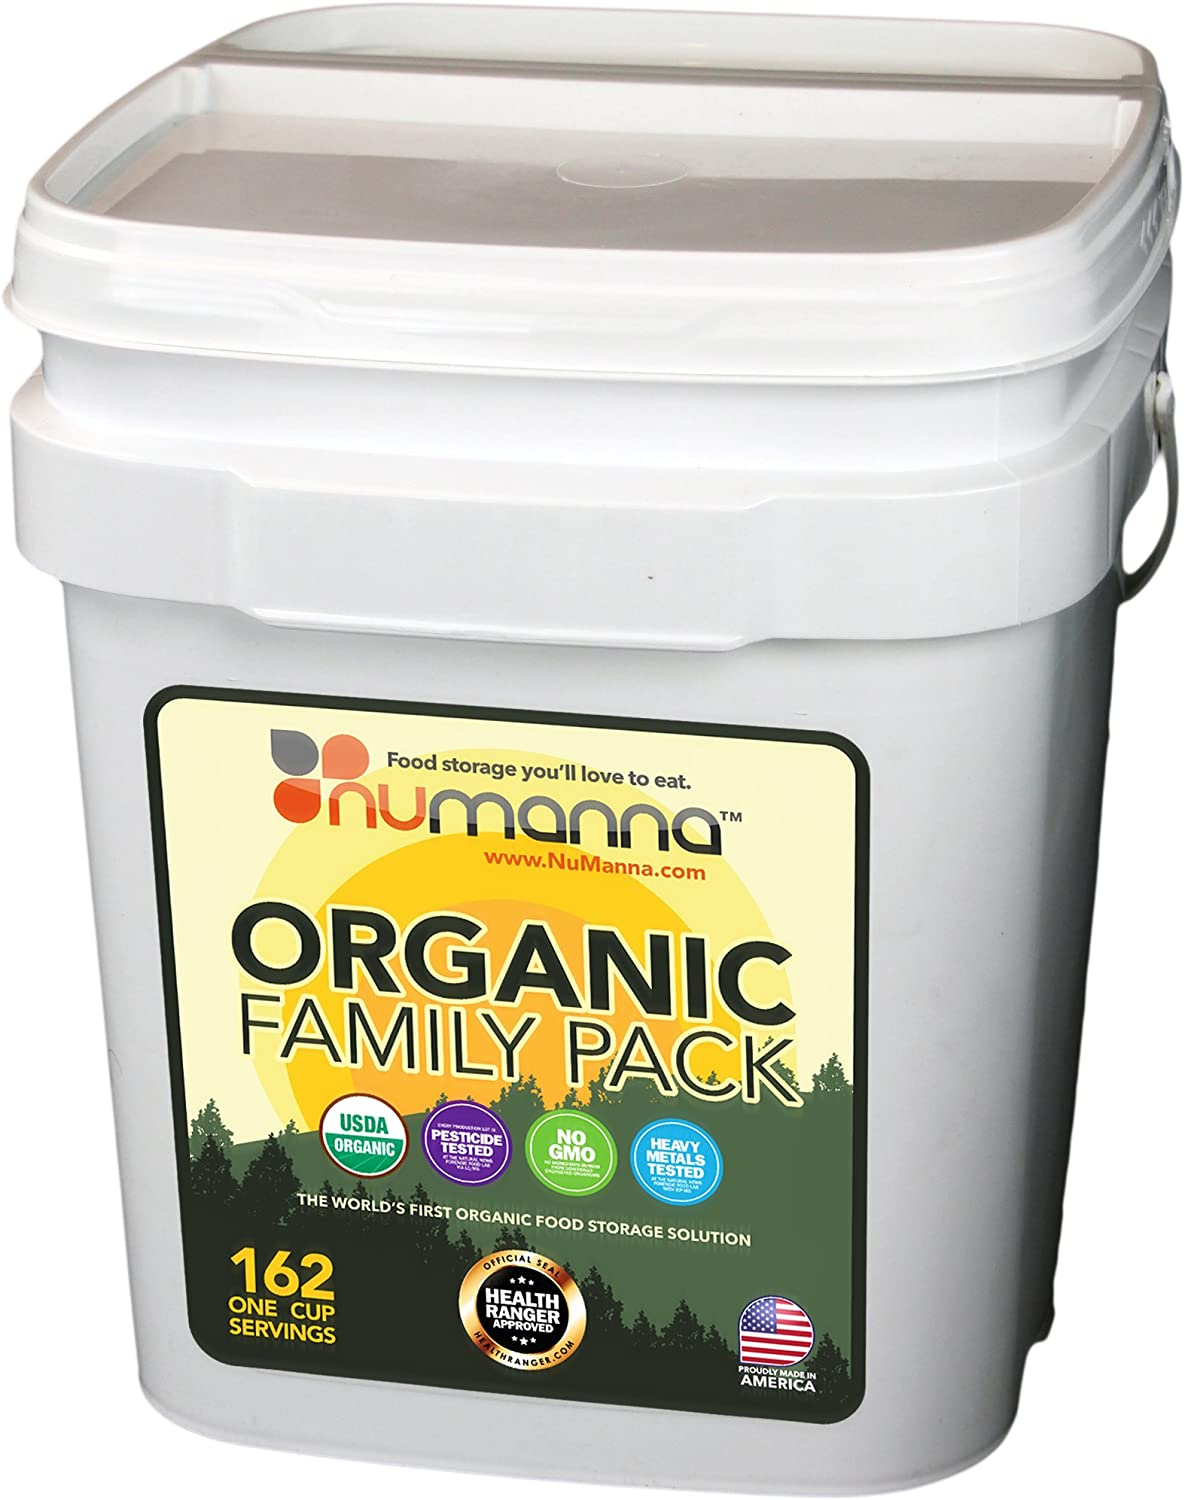 NuManna USDA ORGANIC Family Pack 162 Servings, Emergency Survival Food Storage Kit, Separate Rations, in a Bucket, Meals Included Have 25 Year Shelf Life , GMO-Free (Single) - -